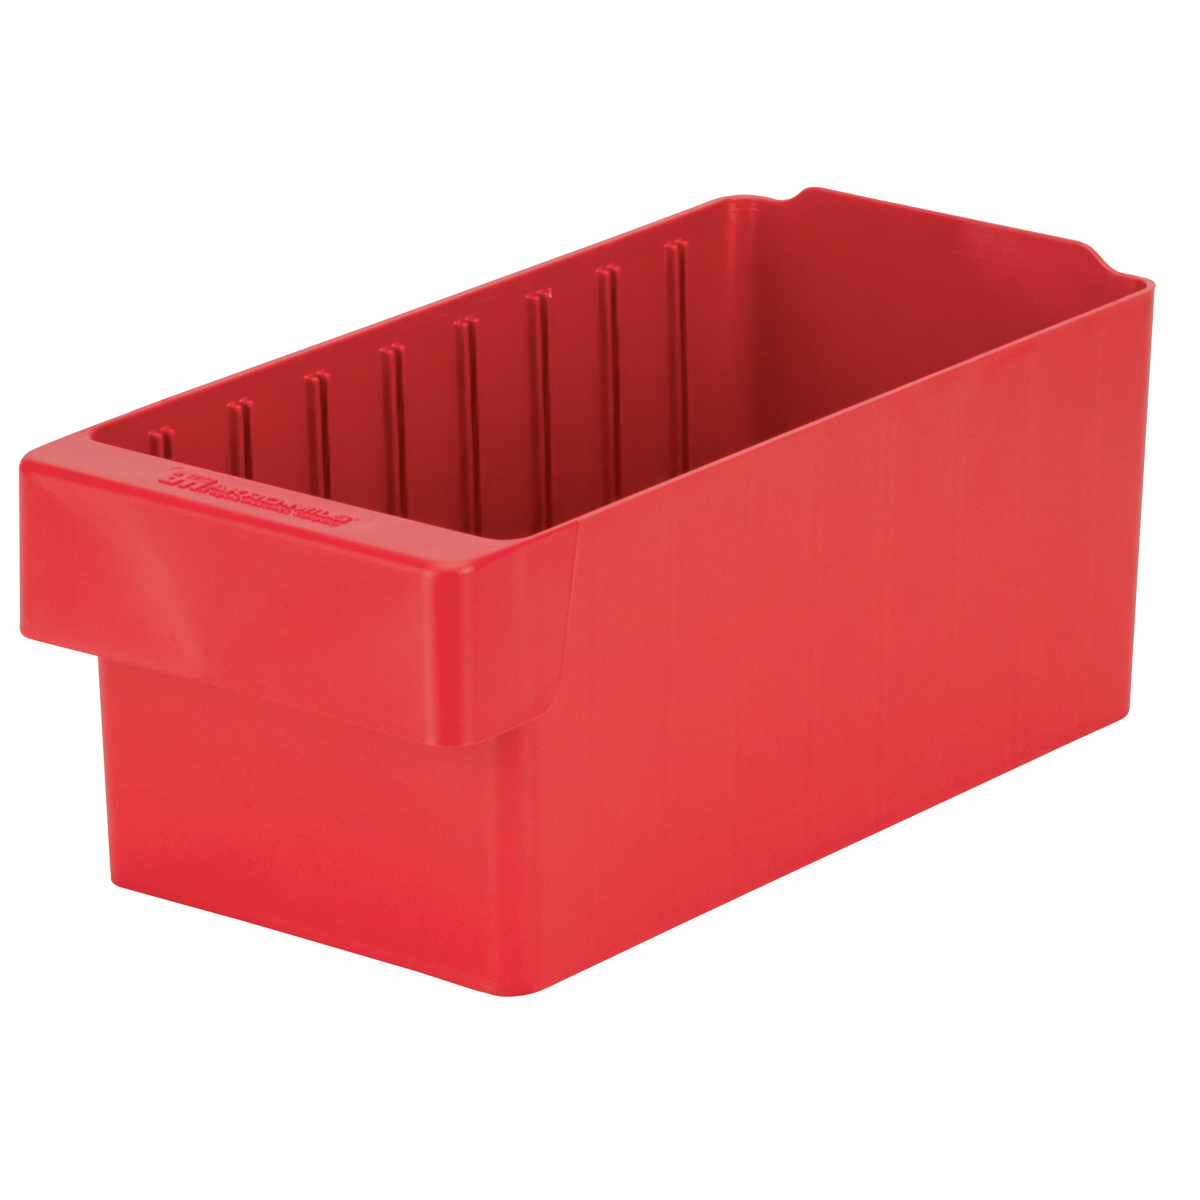 AkroDrawer 11-5/8 x 5-5/8 x 4-5/8, Red (31162RED).  This item sold in carton quantities of 6.